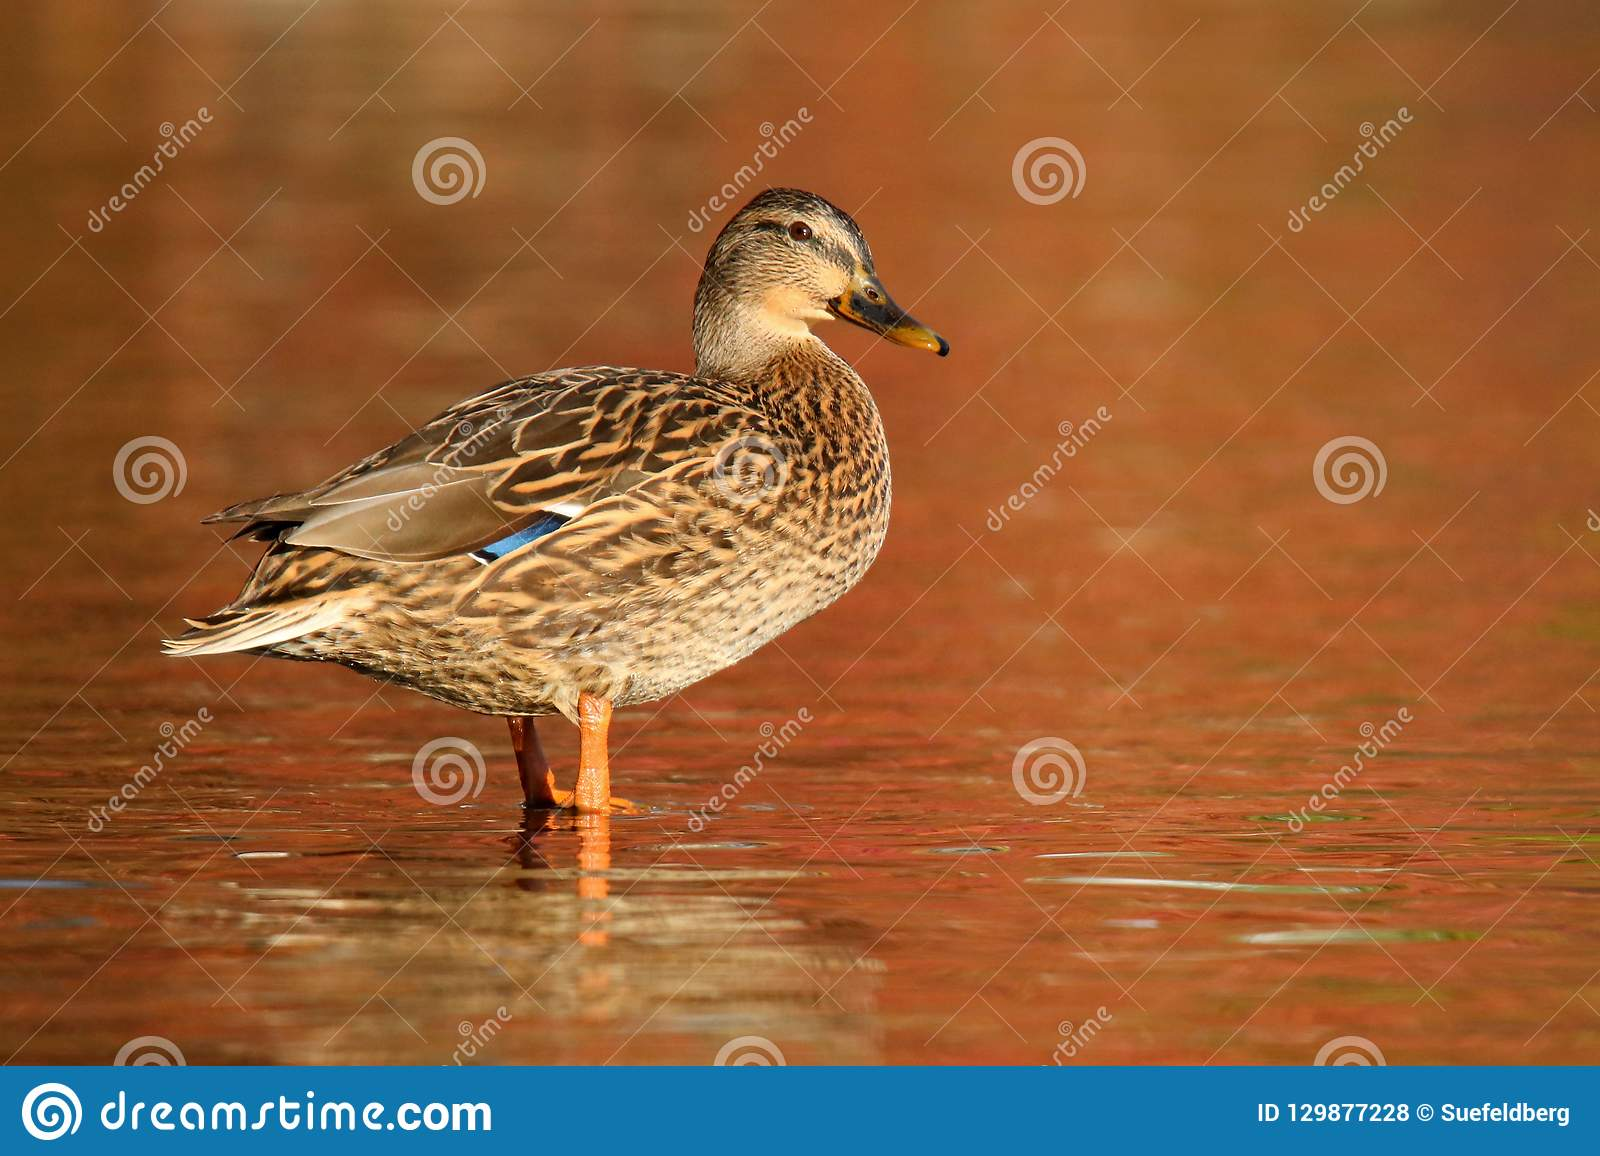 Mallard Duck on orange water in Fall at Dusk